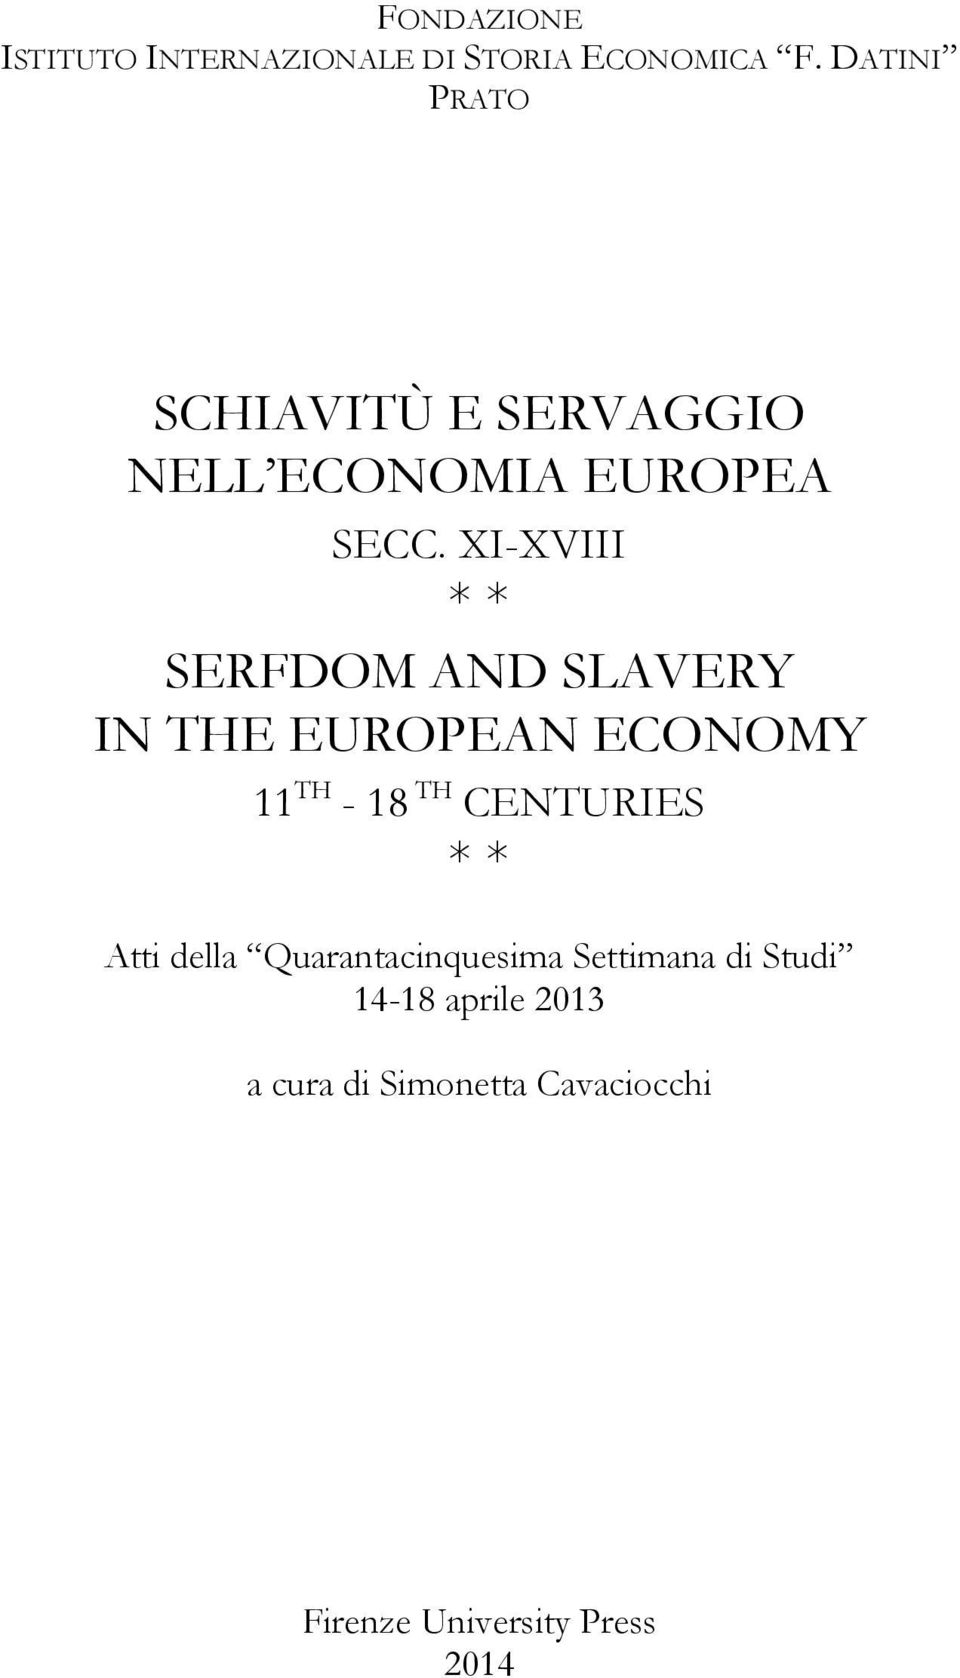 XI-XVIII * * SERFDOM AND SLAVERY IN THE EUROPEAN ECONOMY 11 TH - 18 TH CENTURIES *